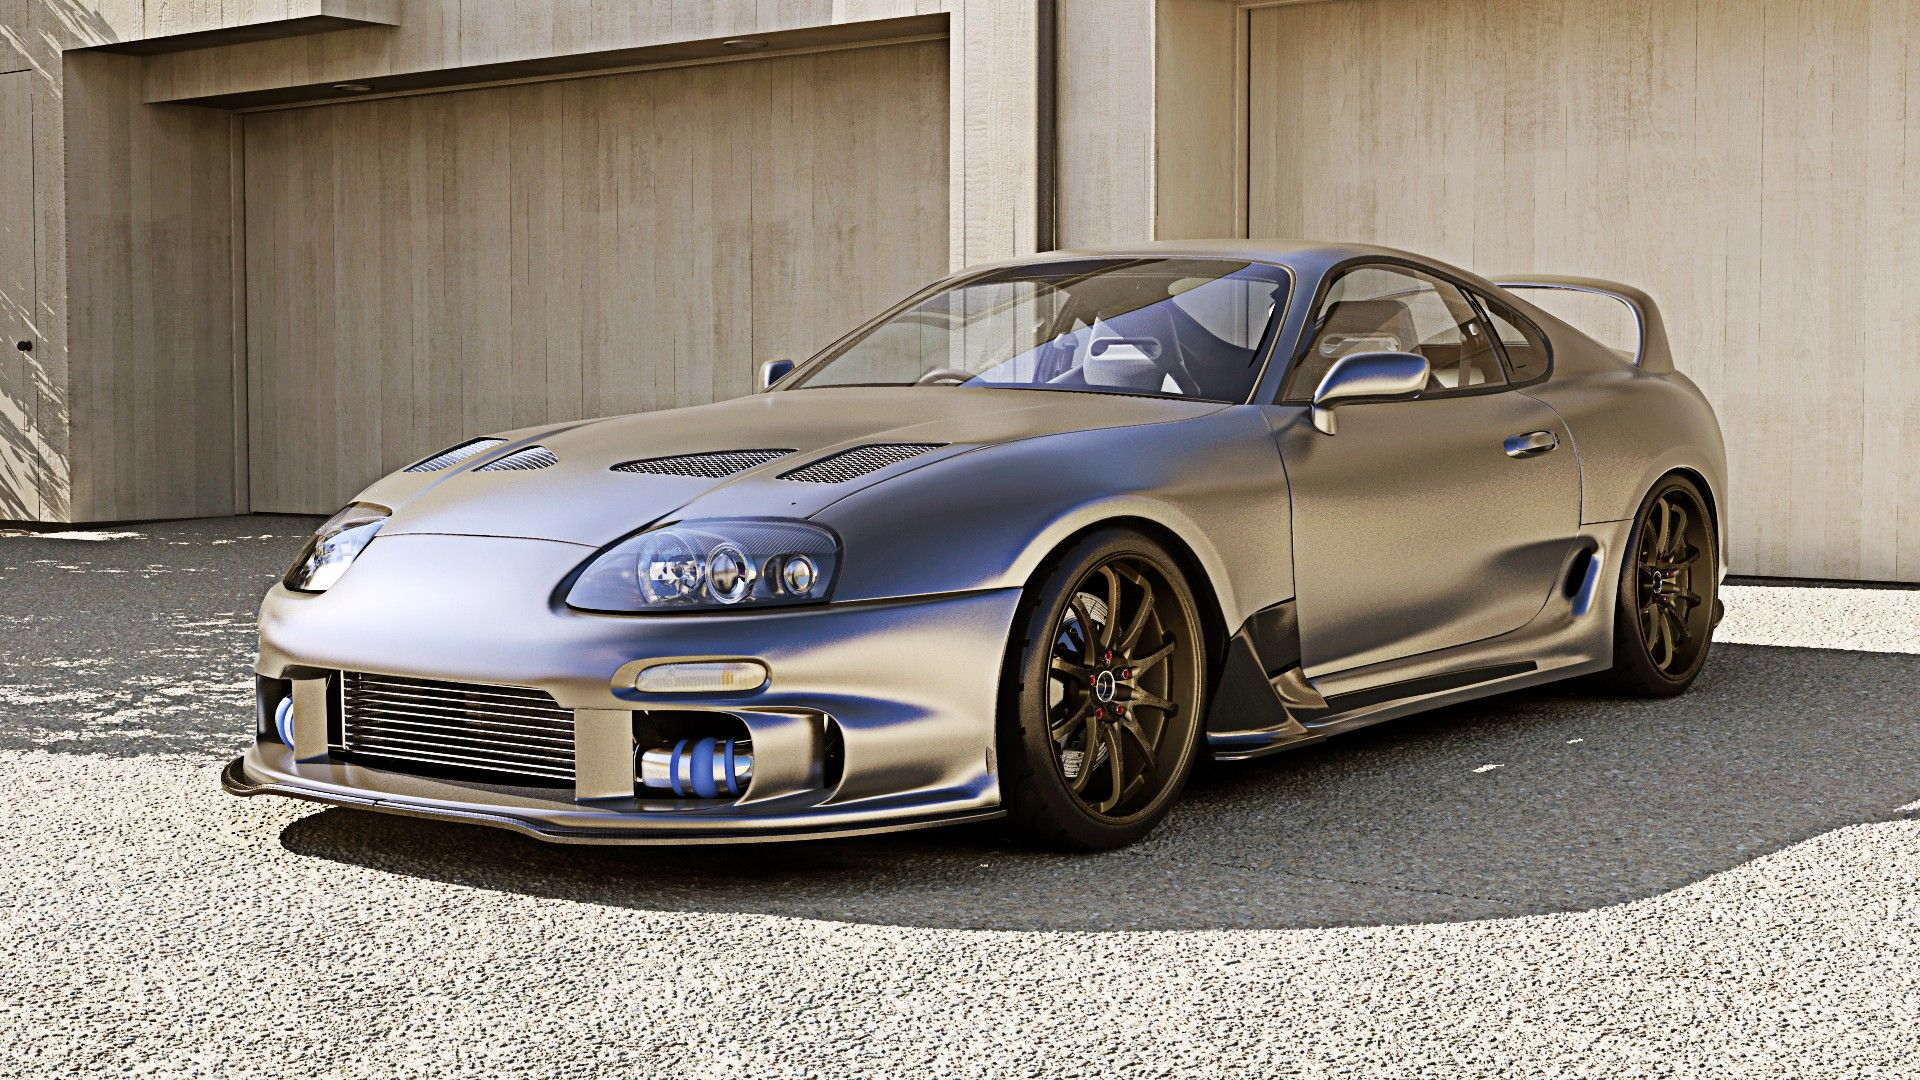 best 25 toyota supra mk4 ideas on pinterest toyota supra toyota supra turbo and toyota supra rz. Black Bedroom Furniture Sets. Home Design Ideas